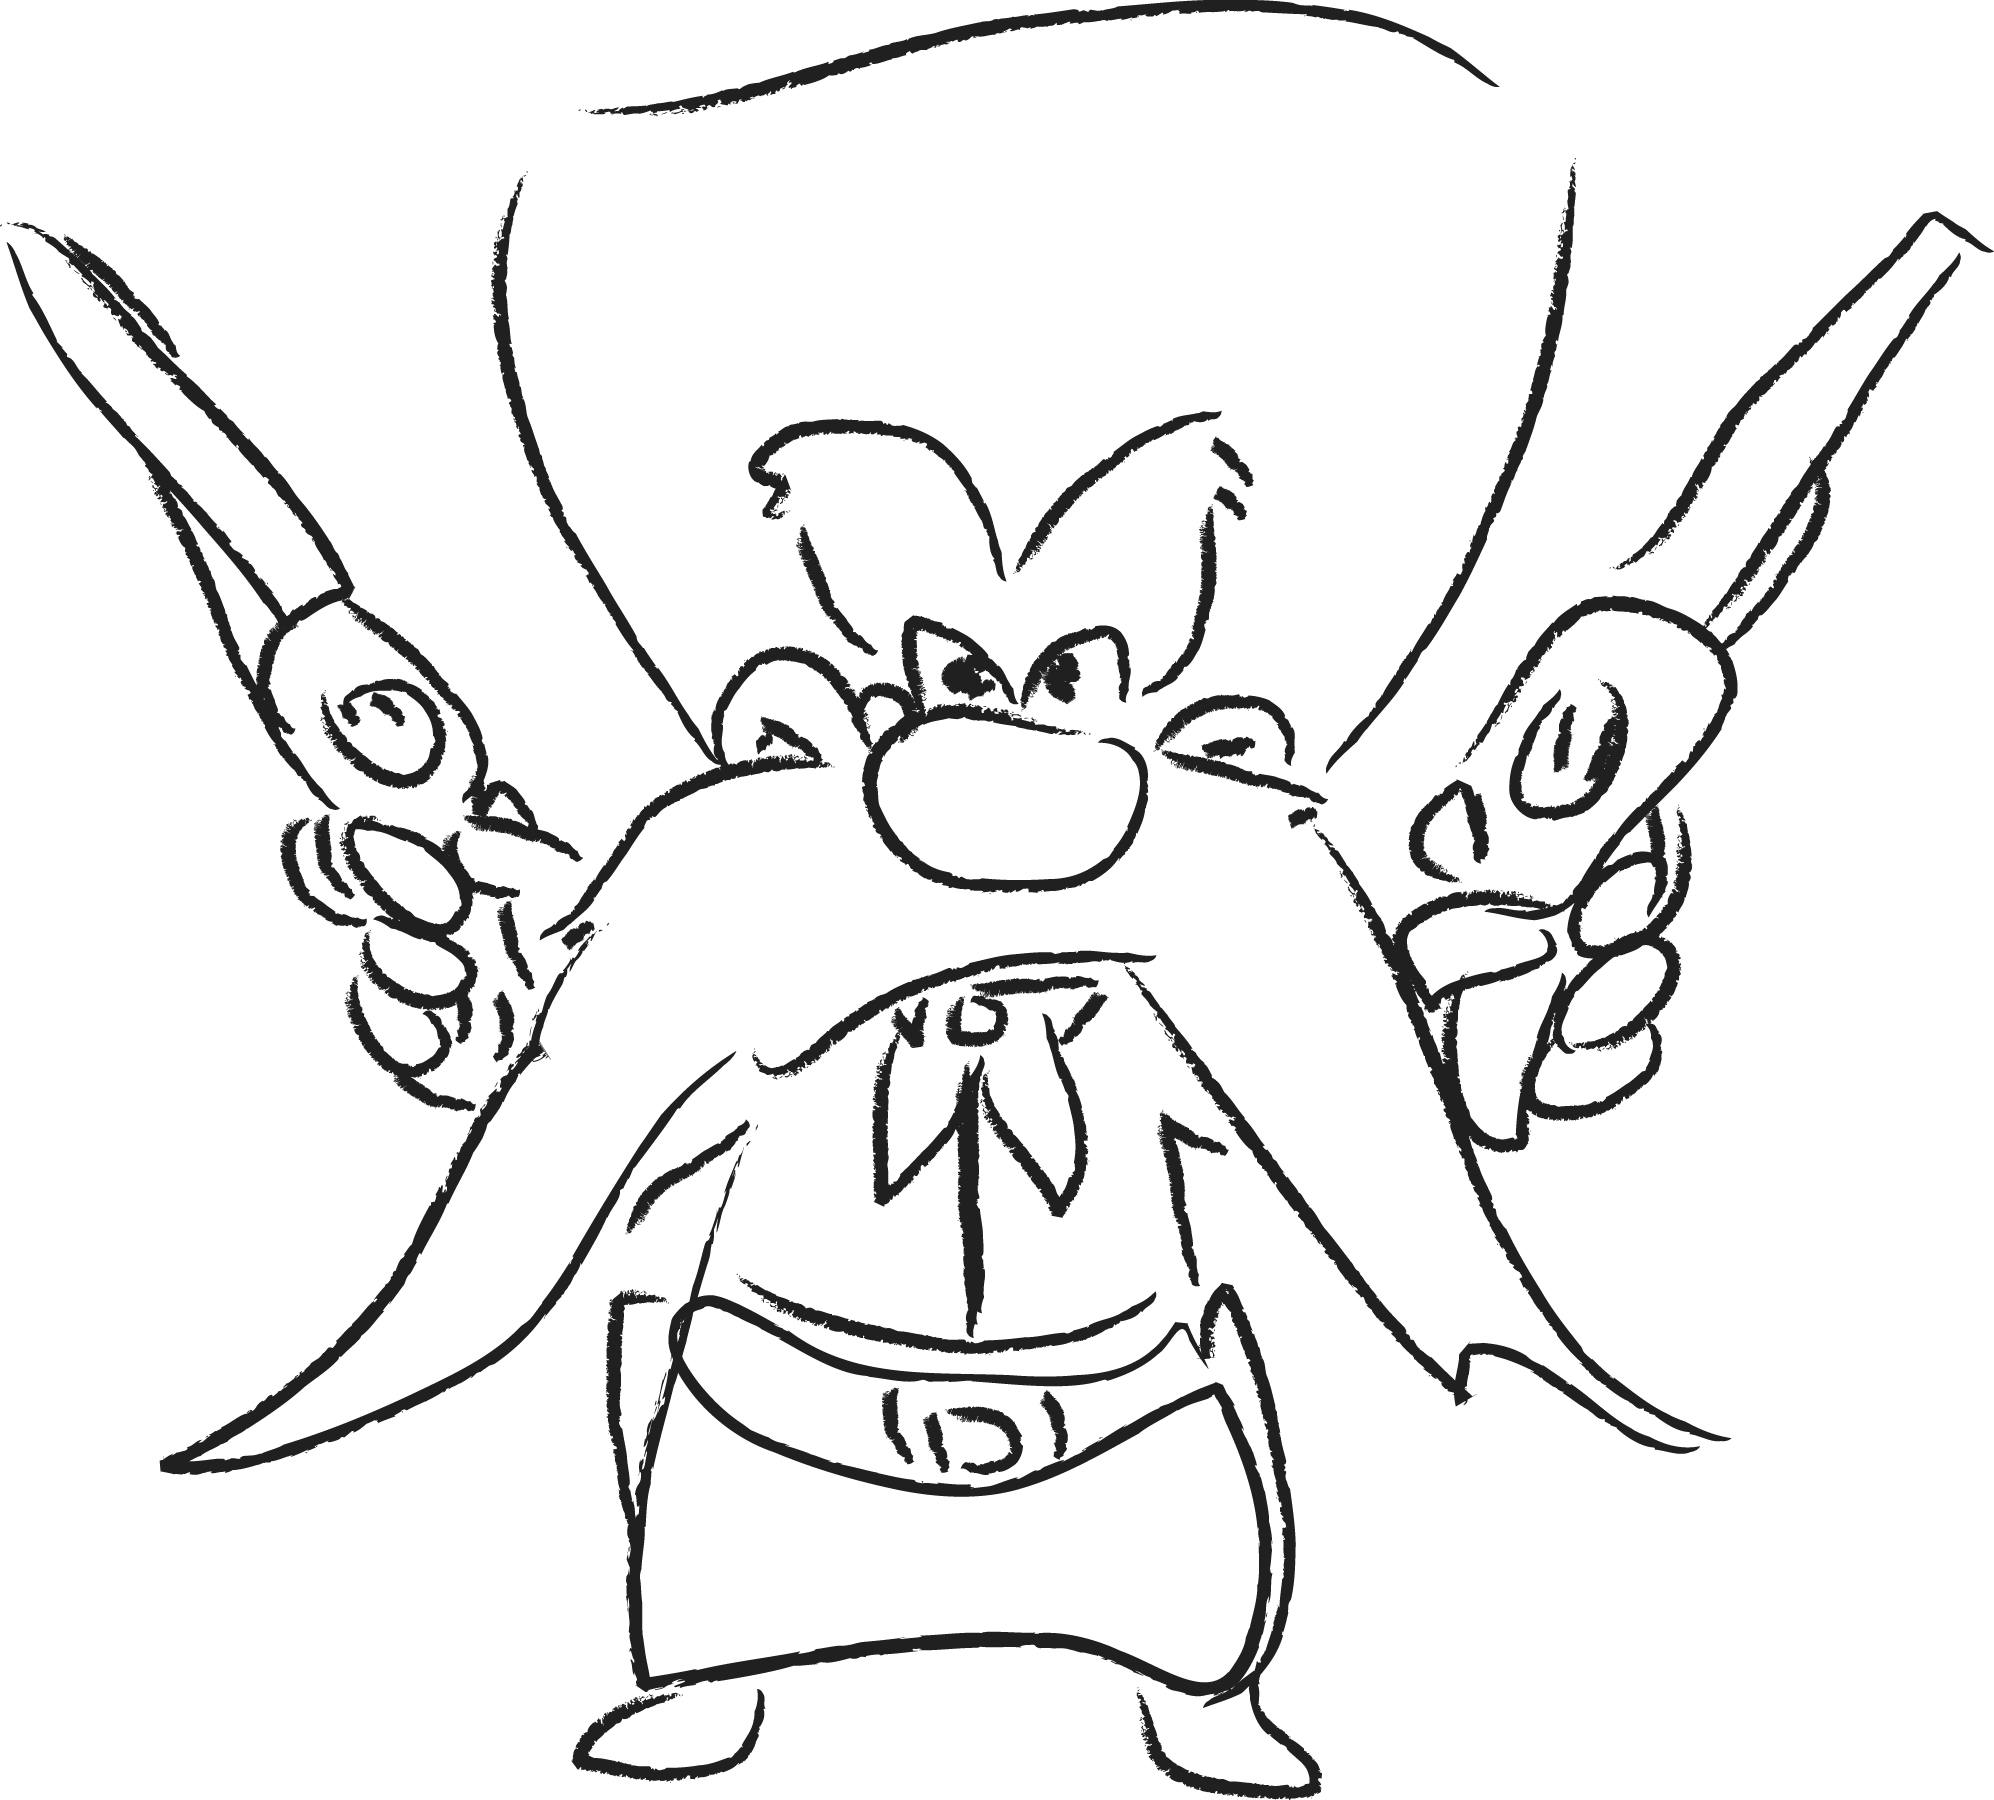 Gangster Cartoon Drawing At Getdrawingscom Free For Personal Use